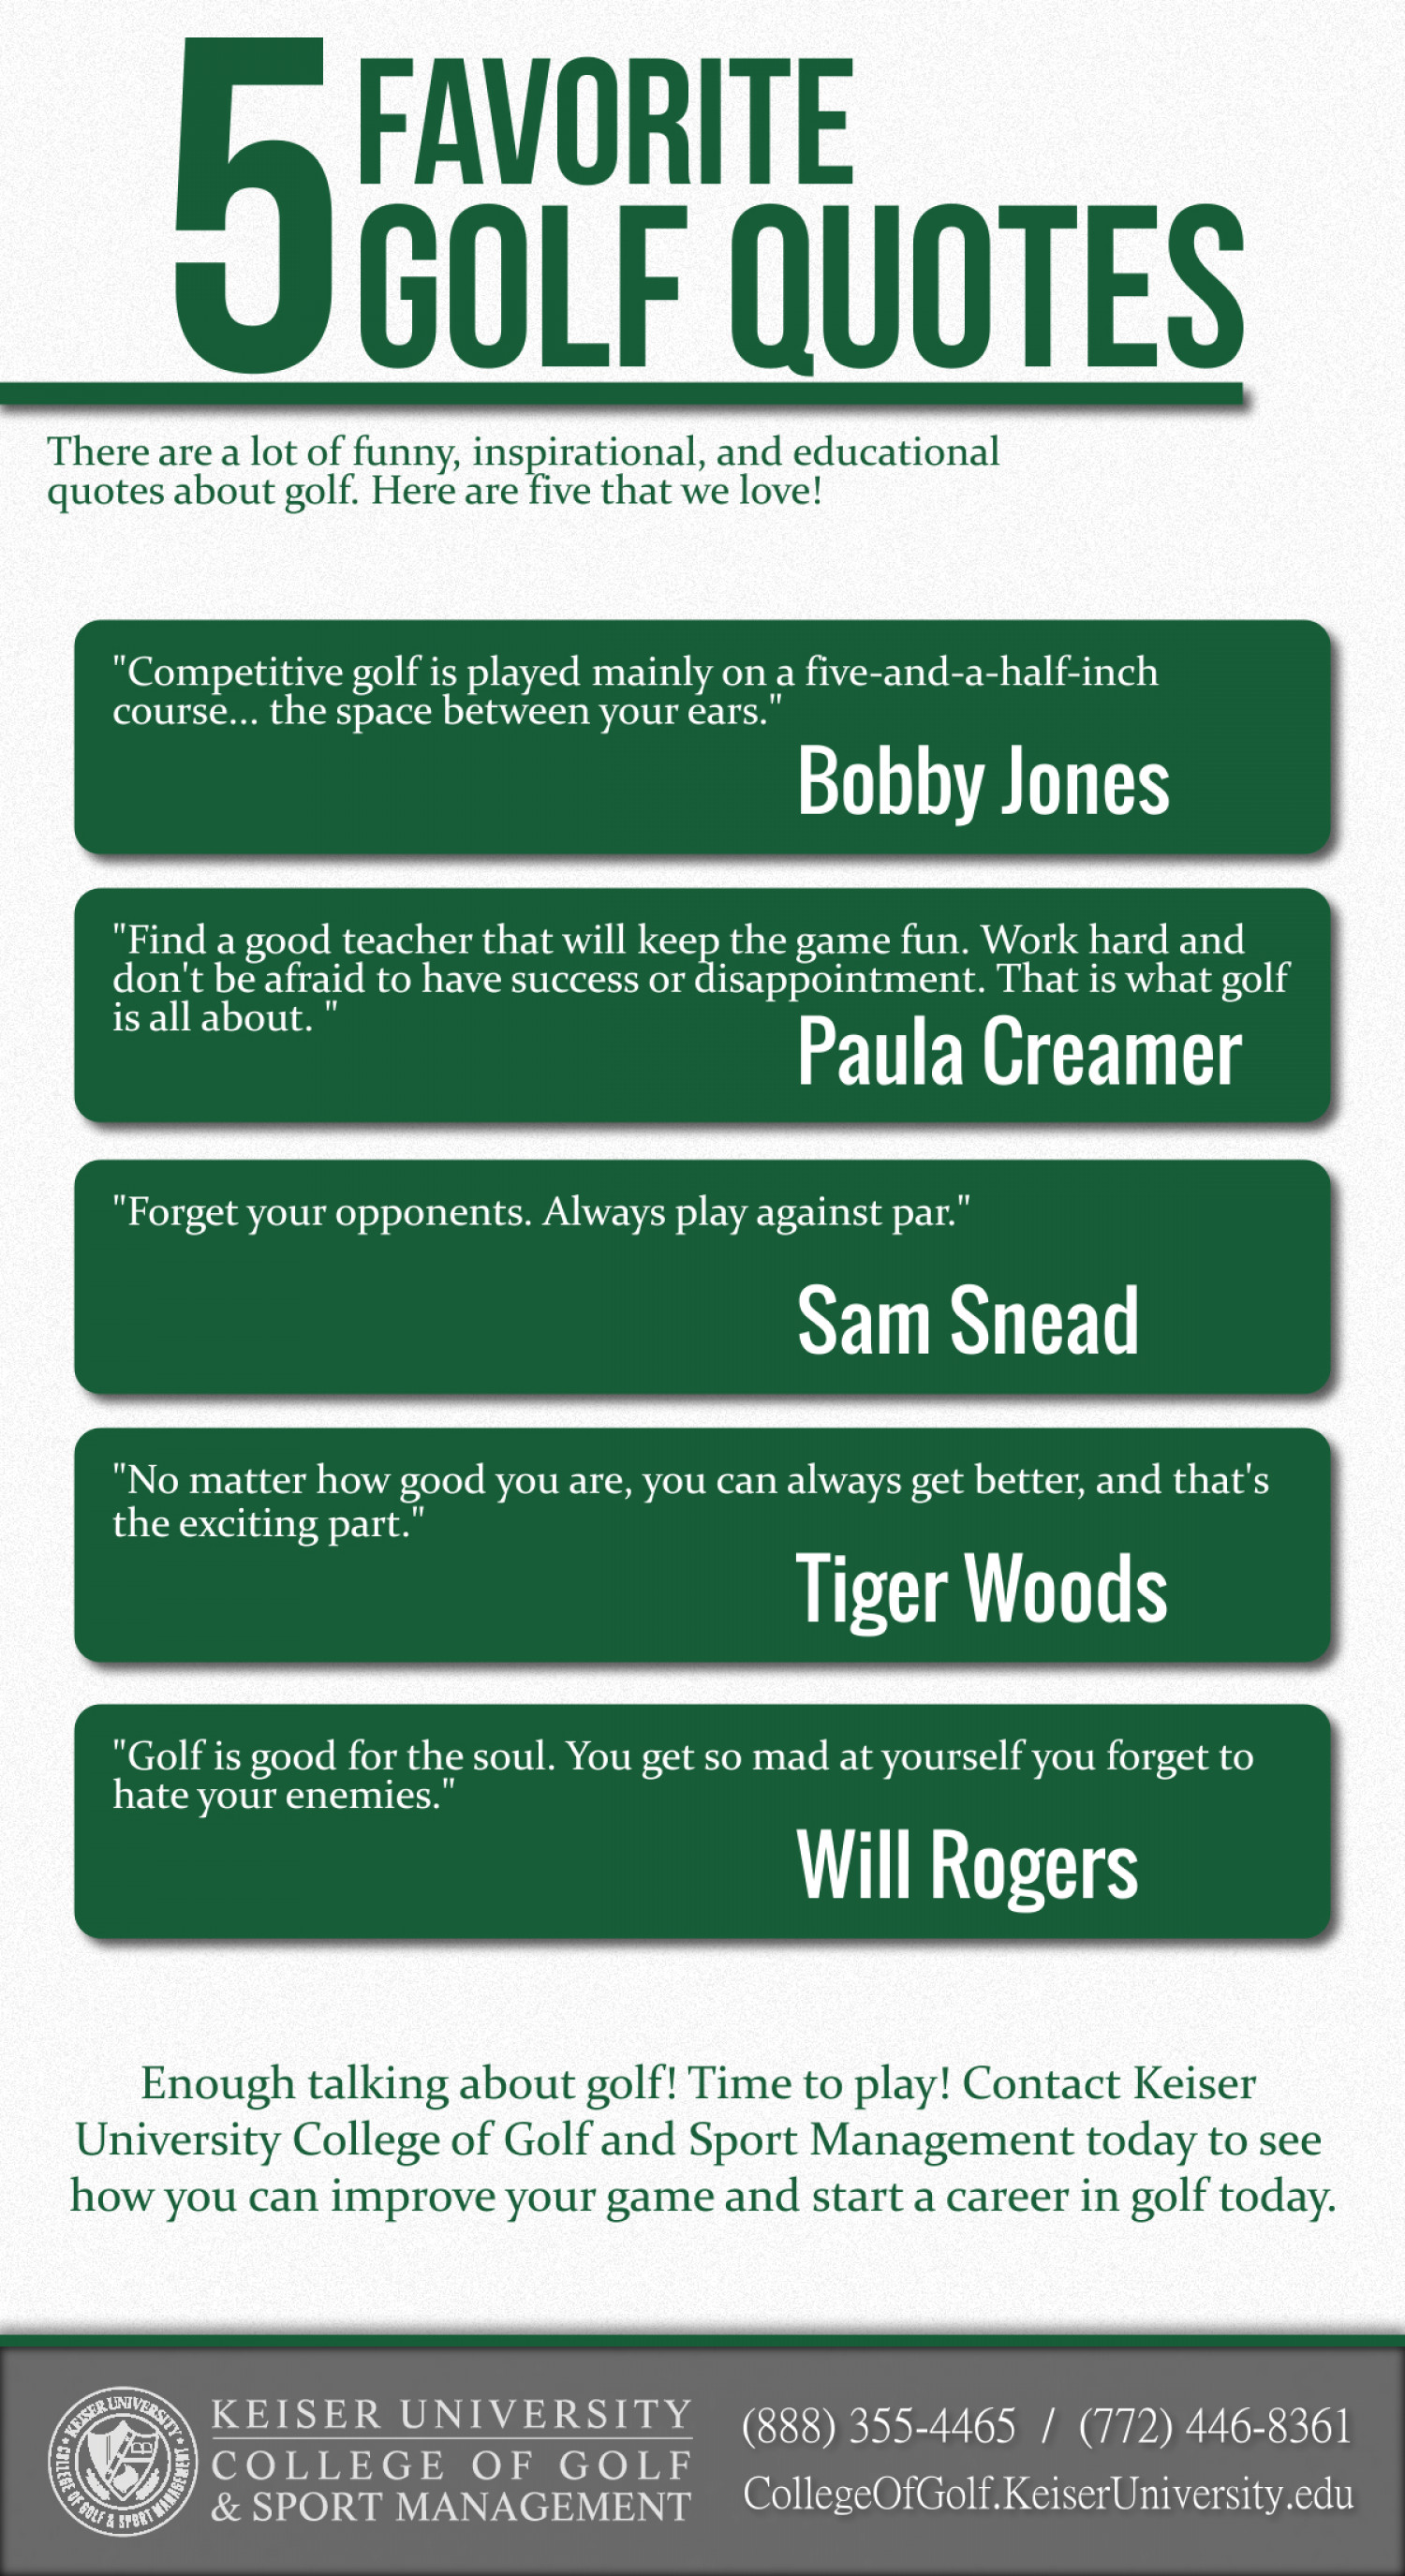 5 Favorite Golf Quotes Infographic